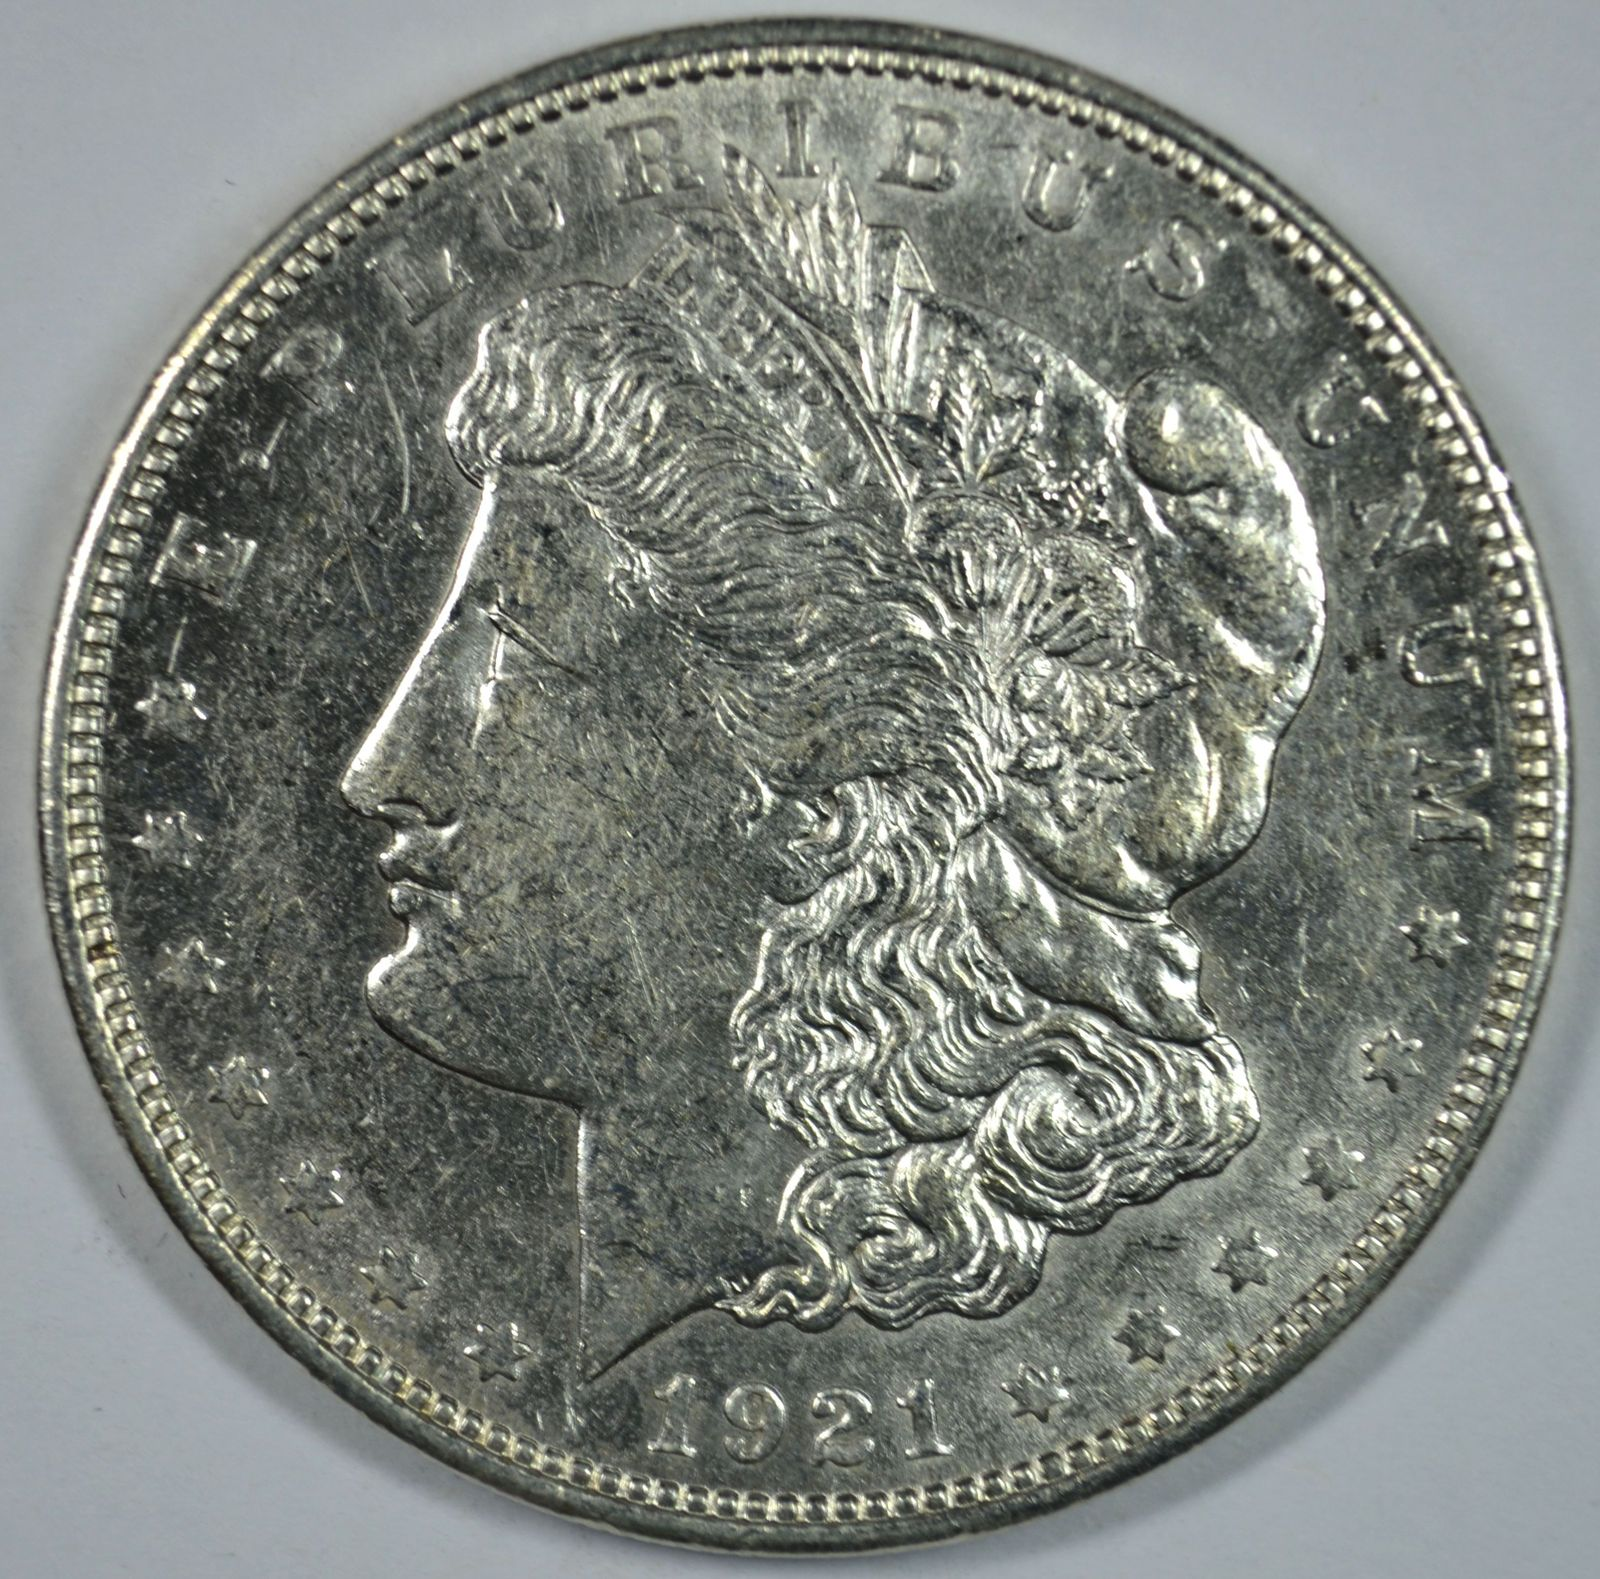 Primary image for 1921 D Morgan circulated silver dollar XF details